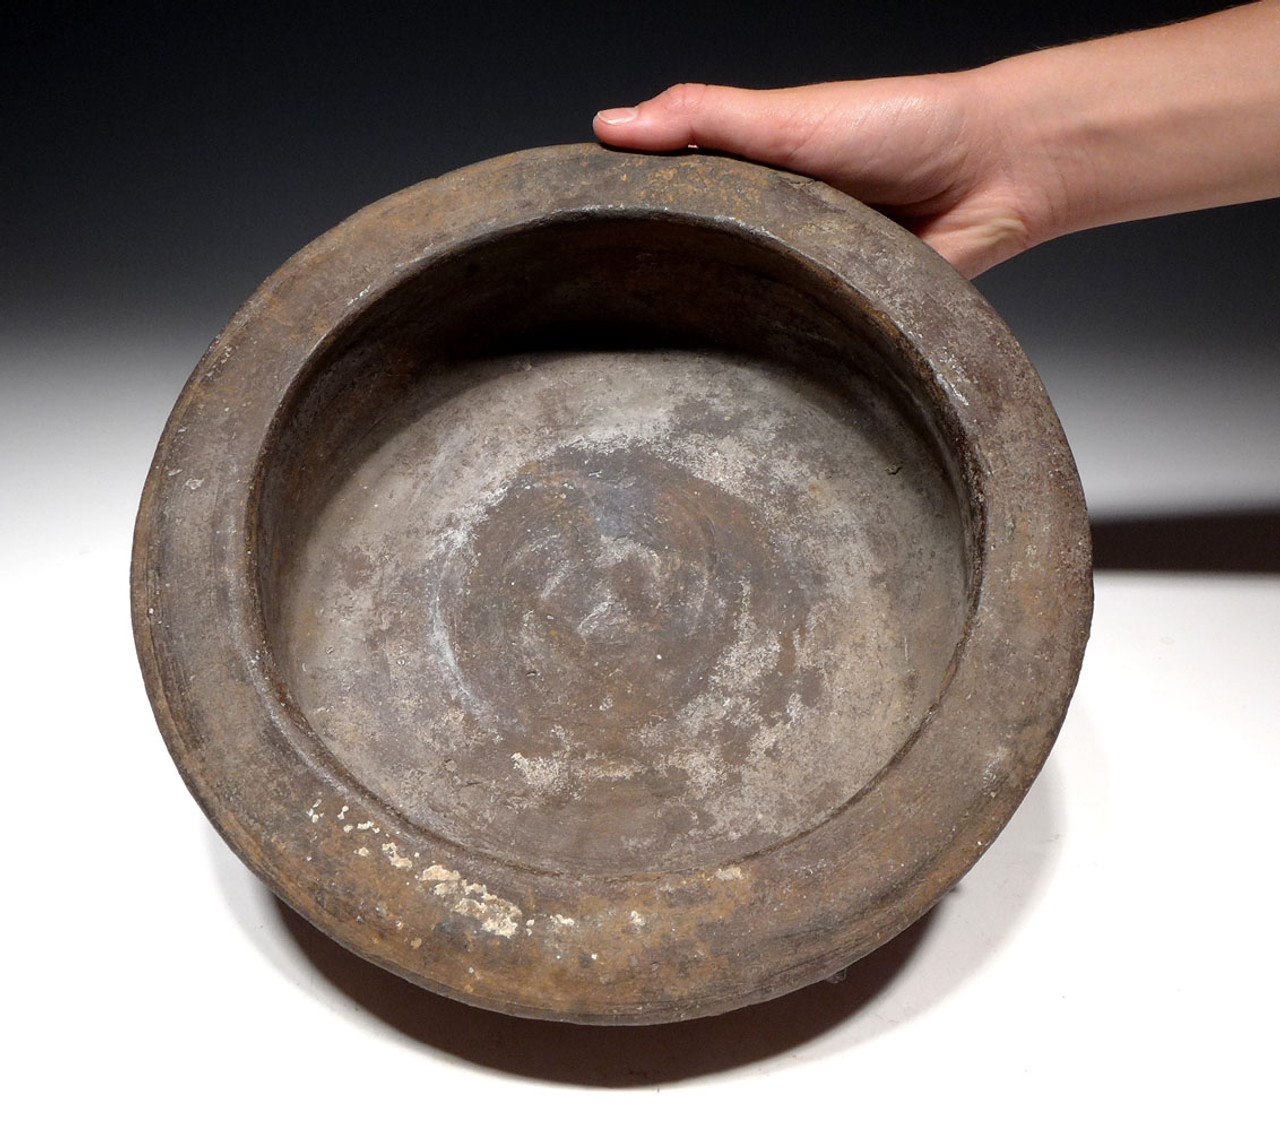 UNBROKEN LARGE MAYAN CEREMONIAL SPIKE DISH BOWL POTTERY WITH CEIBA TREE THORN DESIGN *PCX850